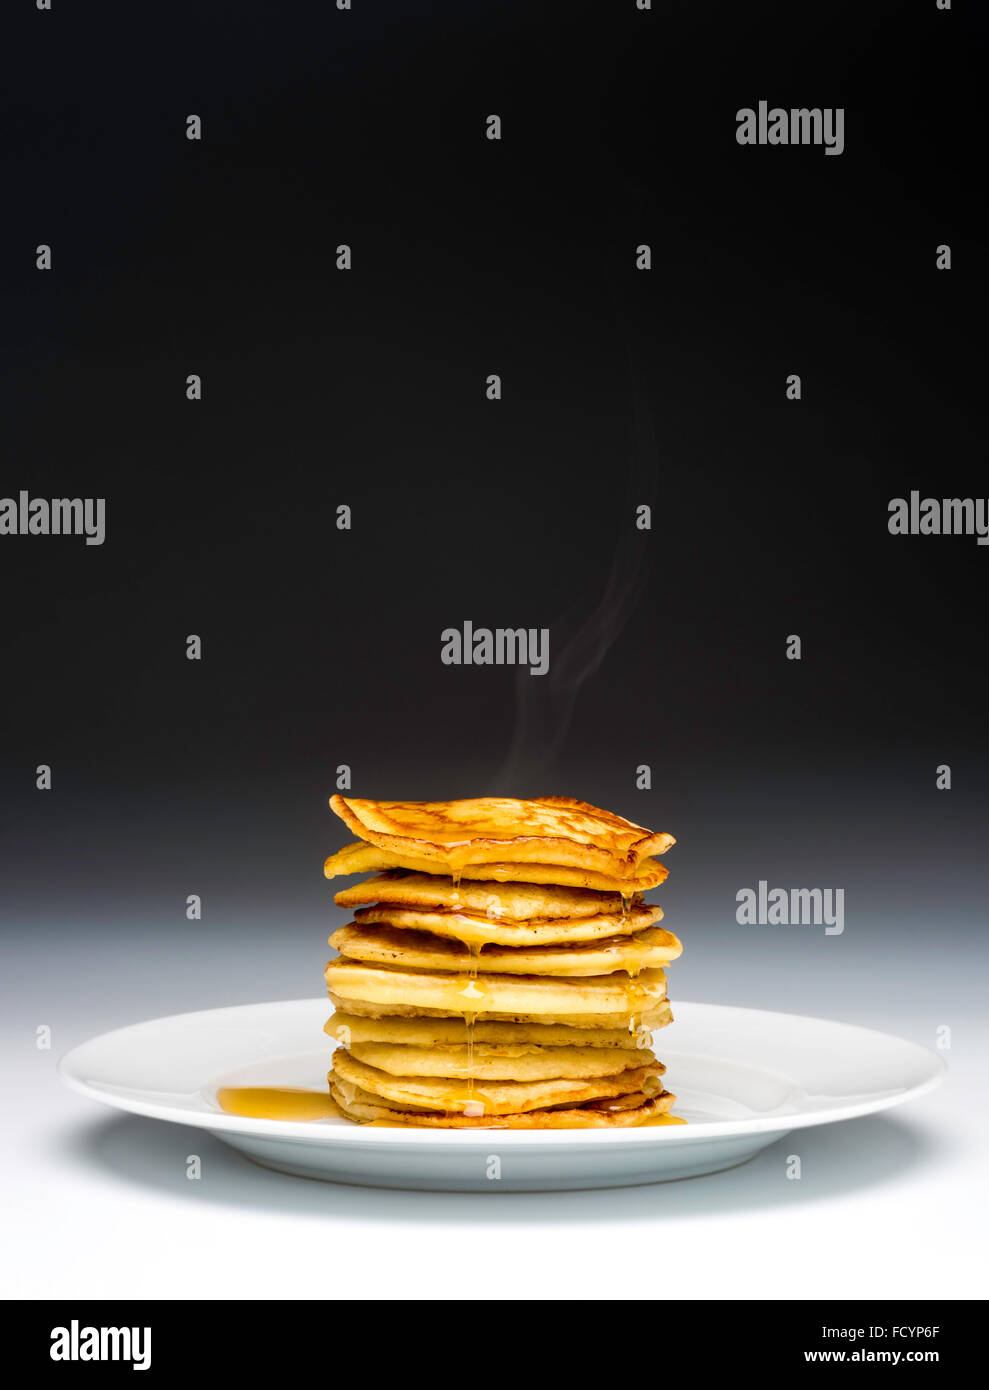 Stack of pancakes on white plate drizzled with syrup - Stock Image